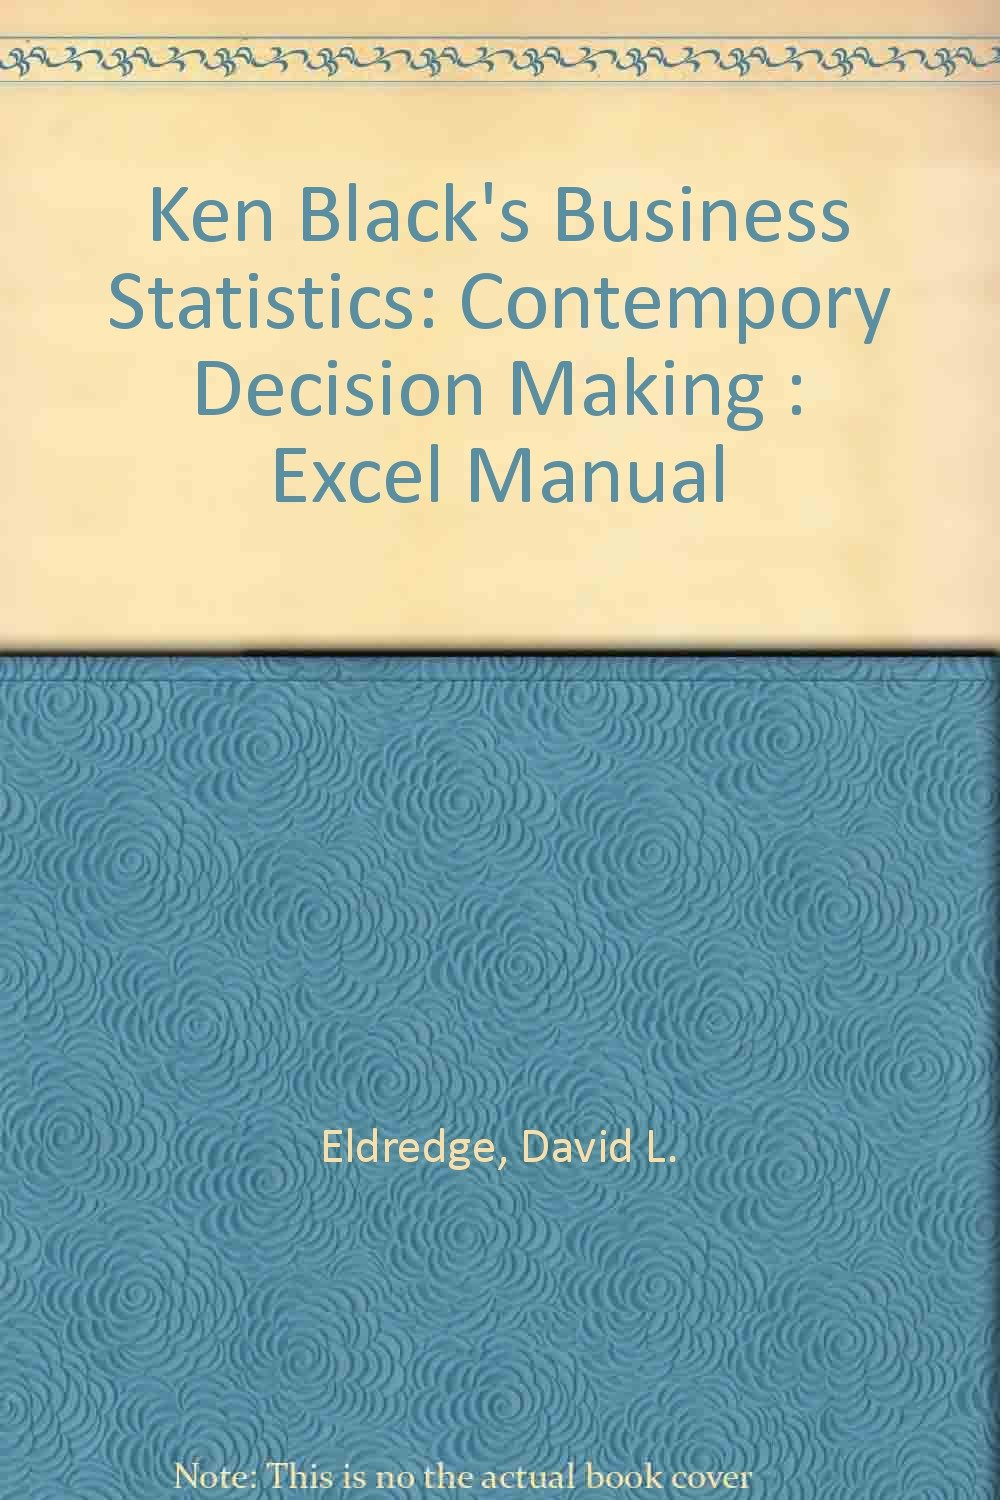 Amazon.in: Buy Ken Black's Business Statistics: Contempory Decision Making  : Excel Manual Book Online at Low Prices in India | Ken Black's Business ...